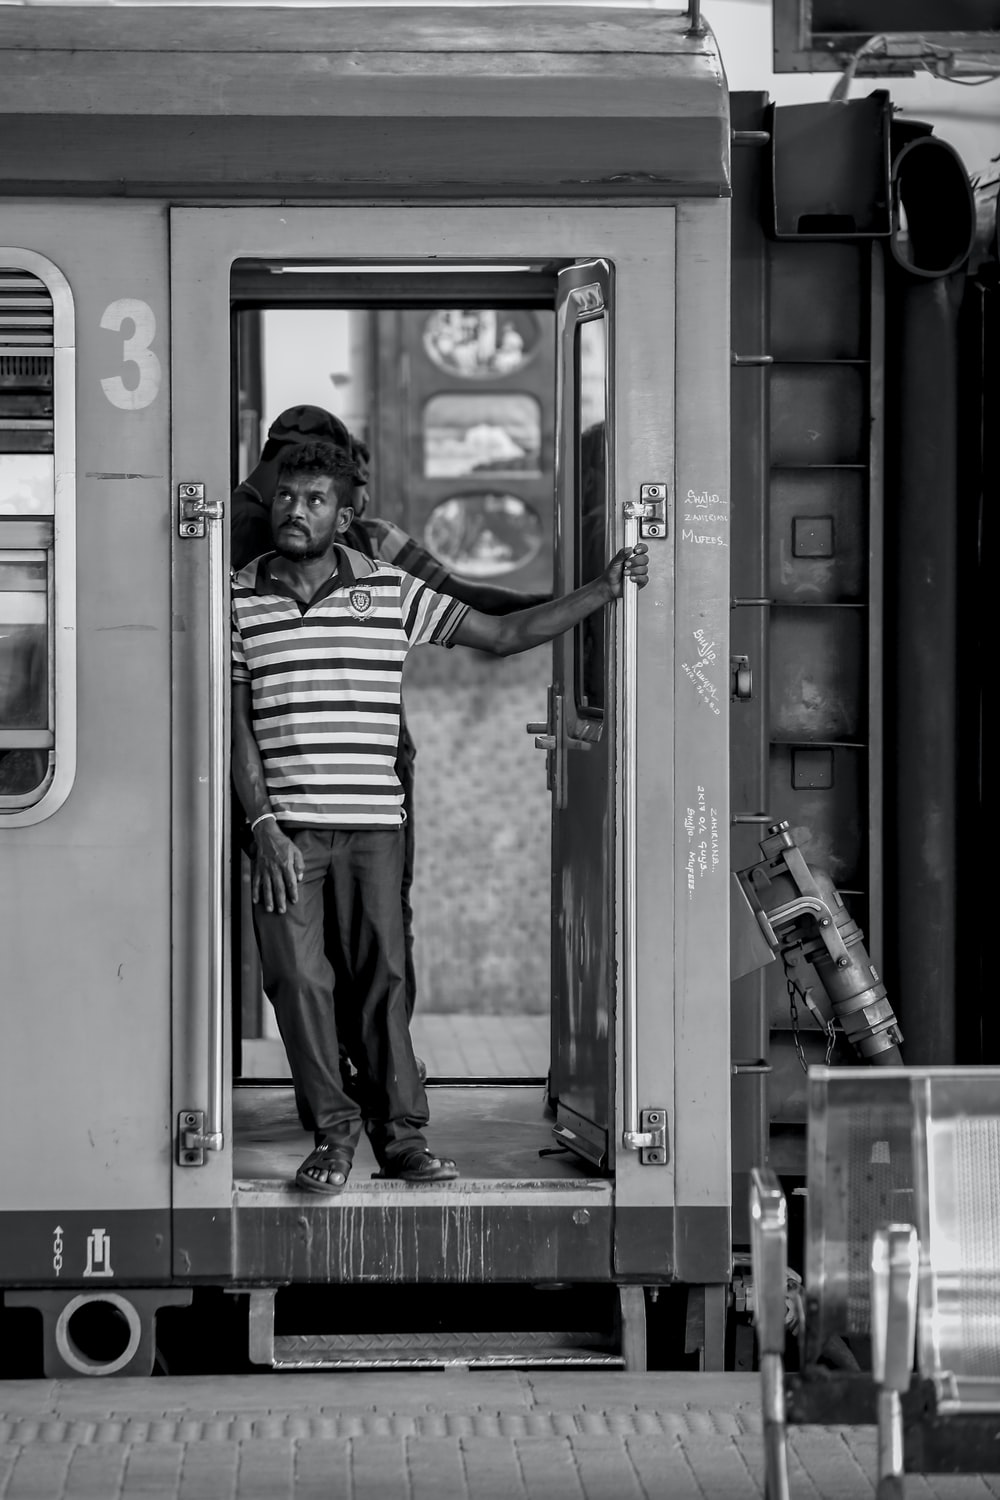 grayscale photography of man in train